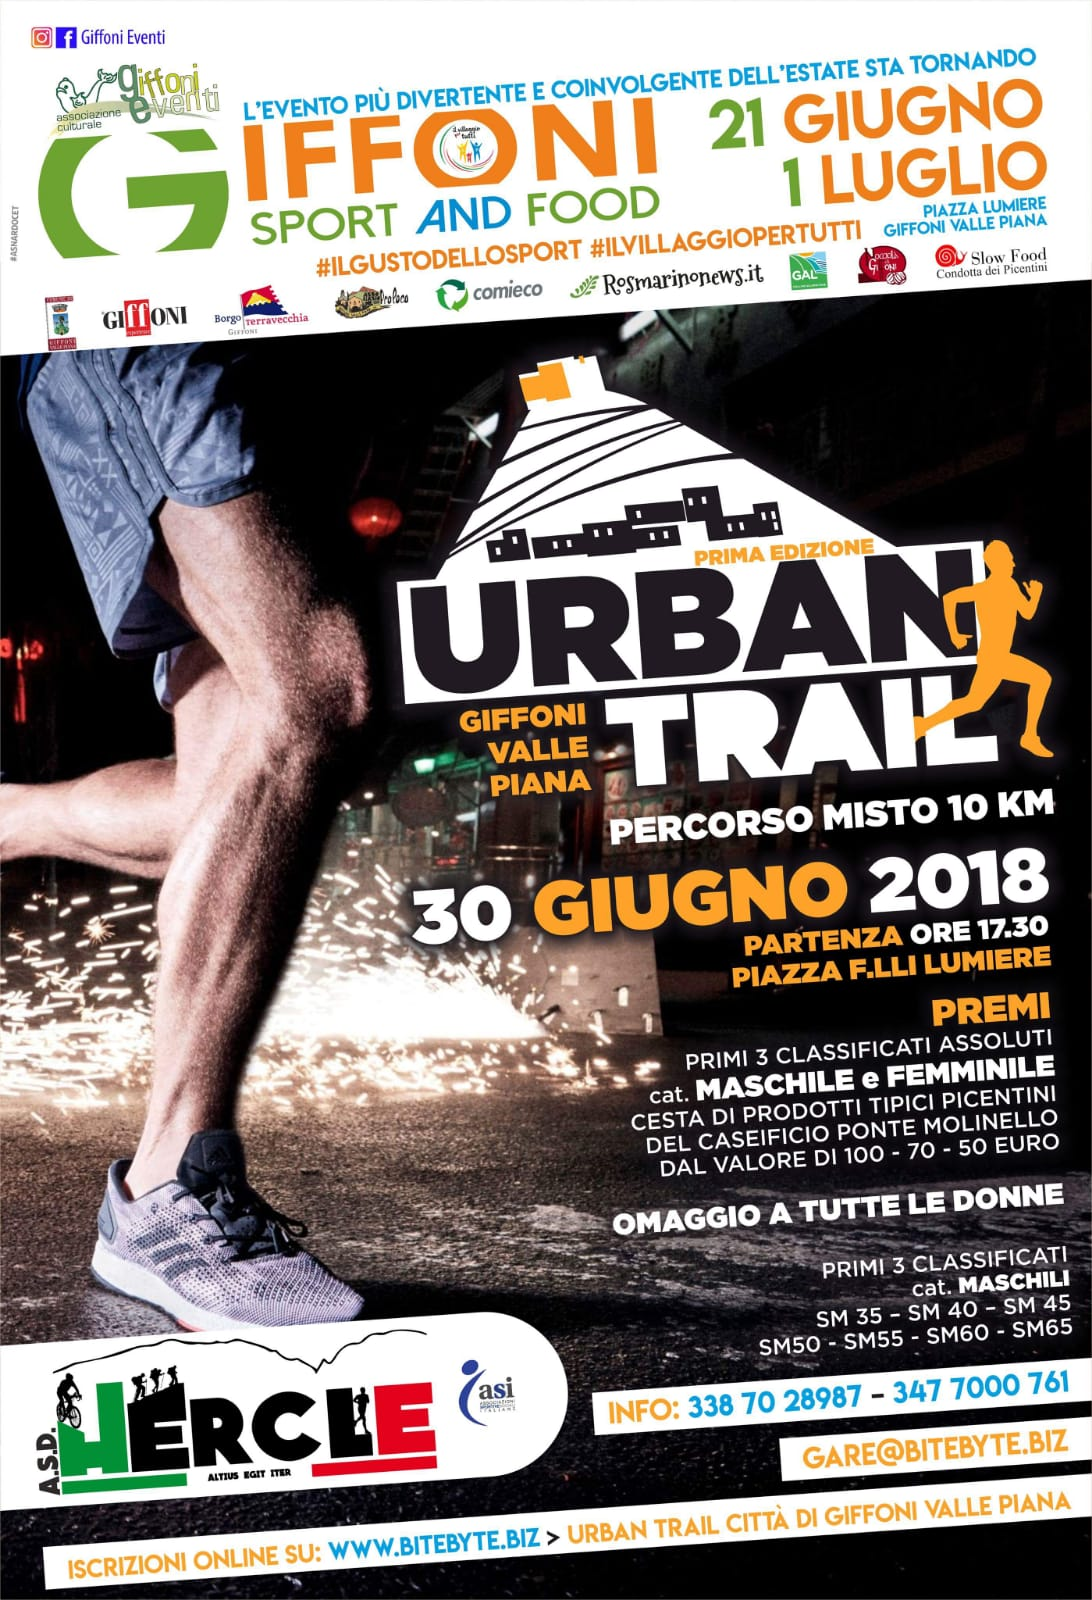 URBAN TRAIL CITTA DI GIFFONI VALLE PIANA